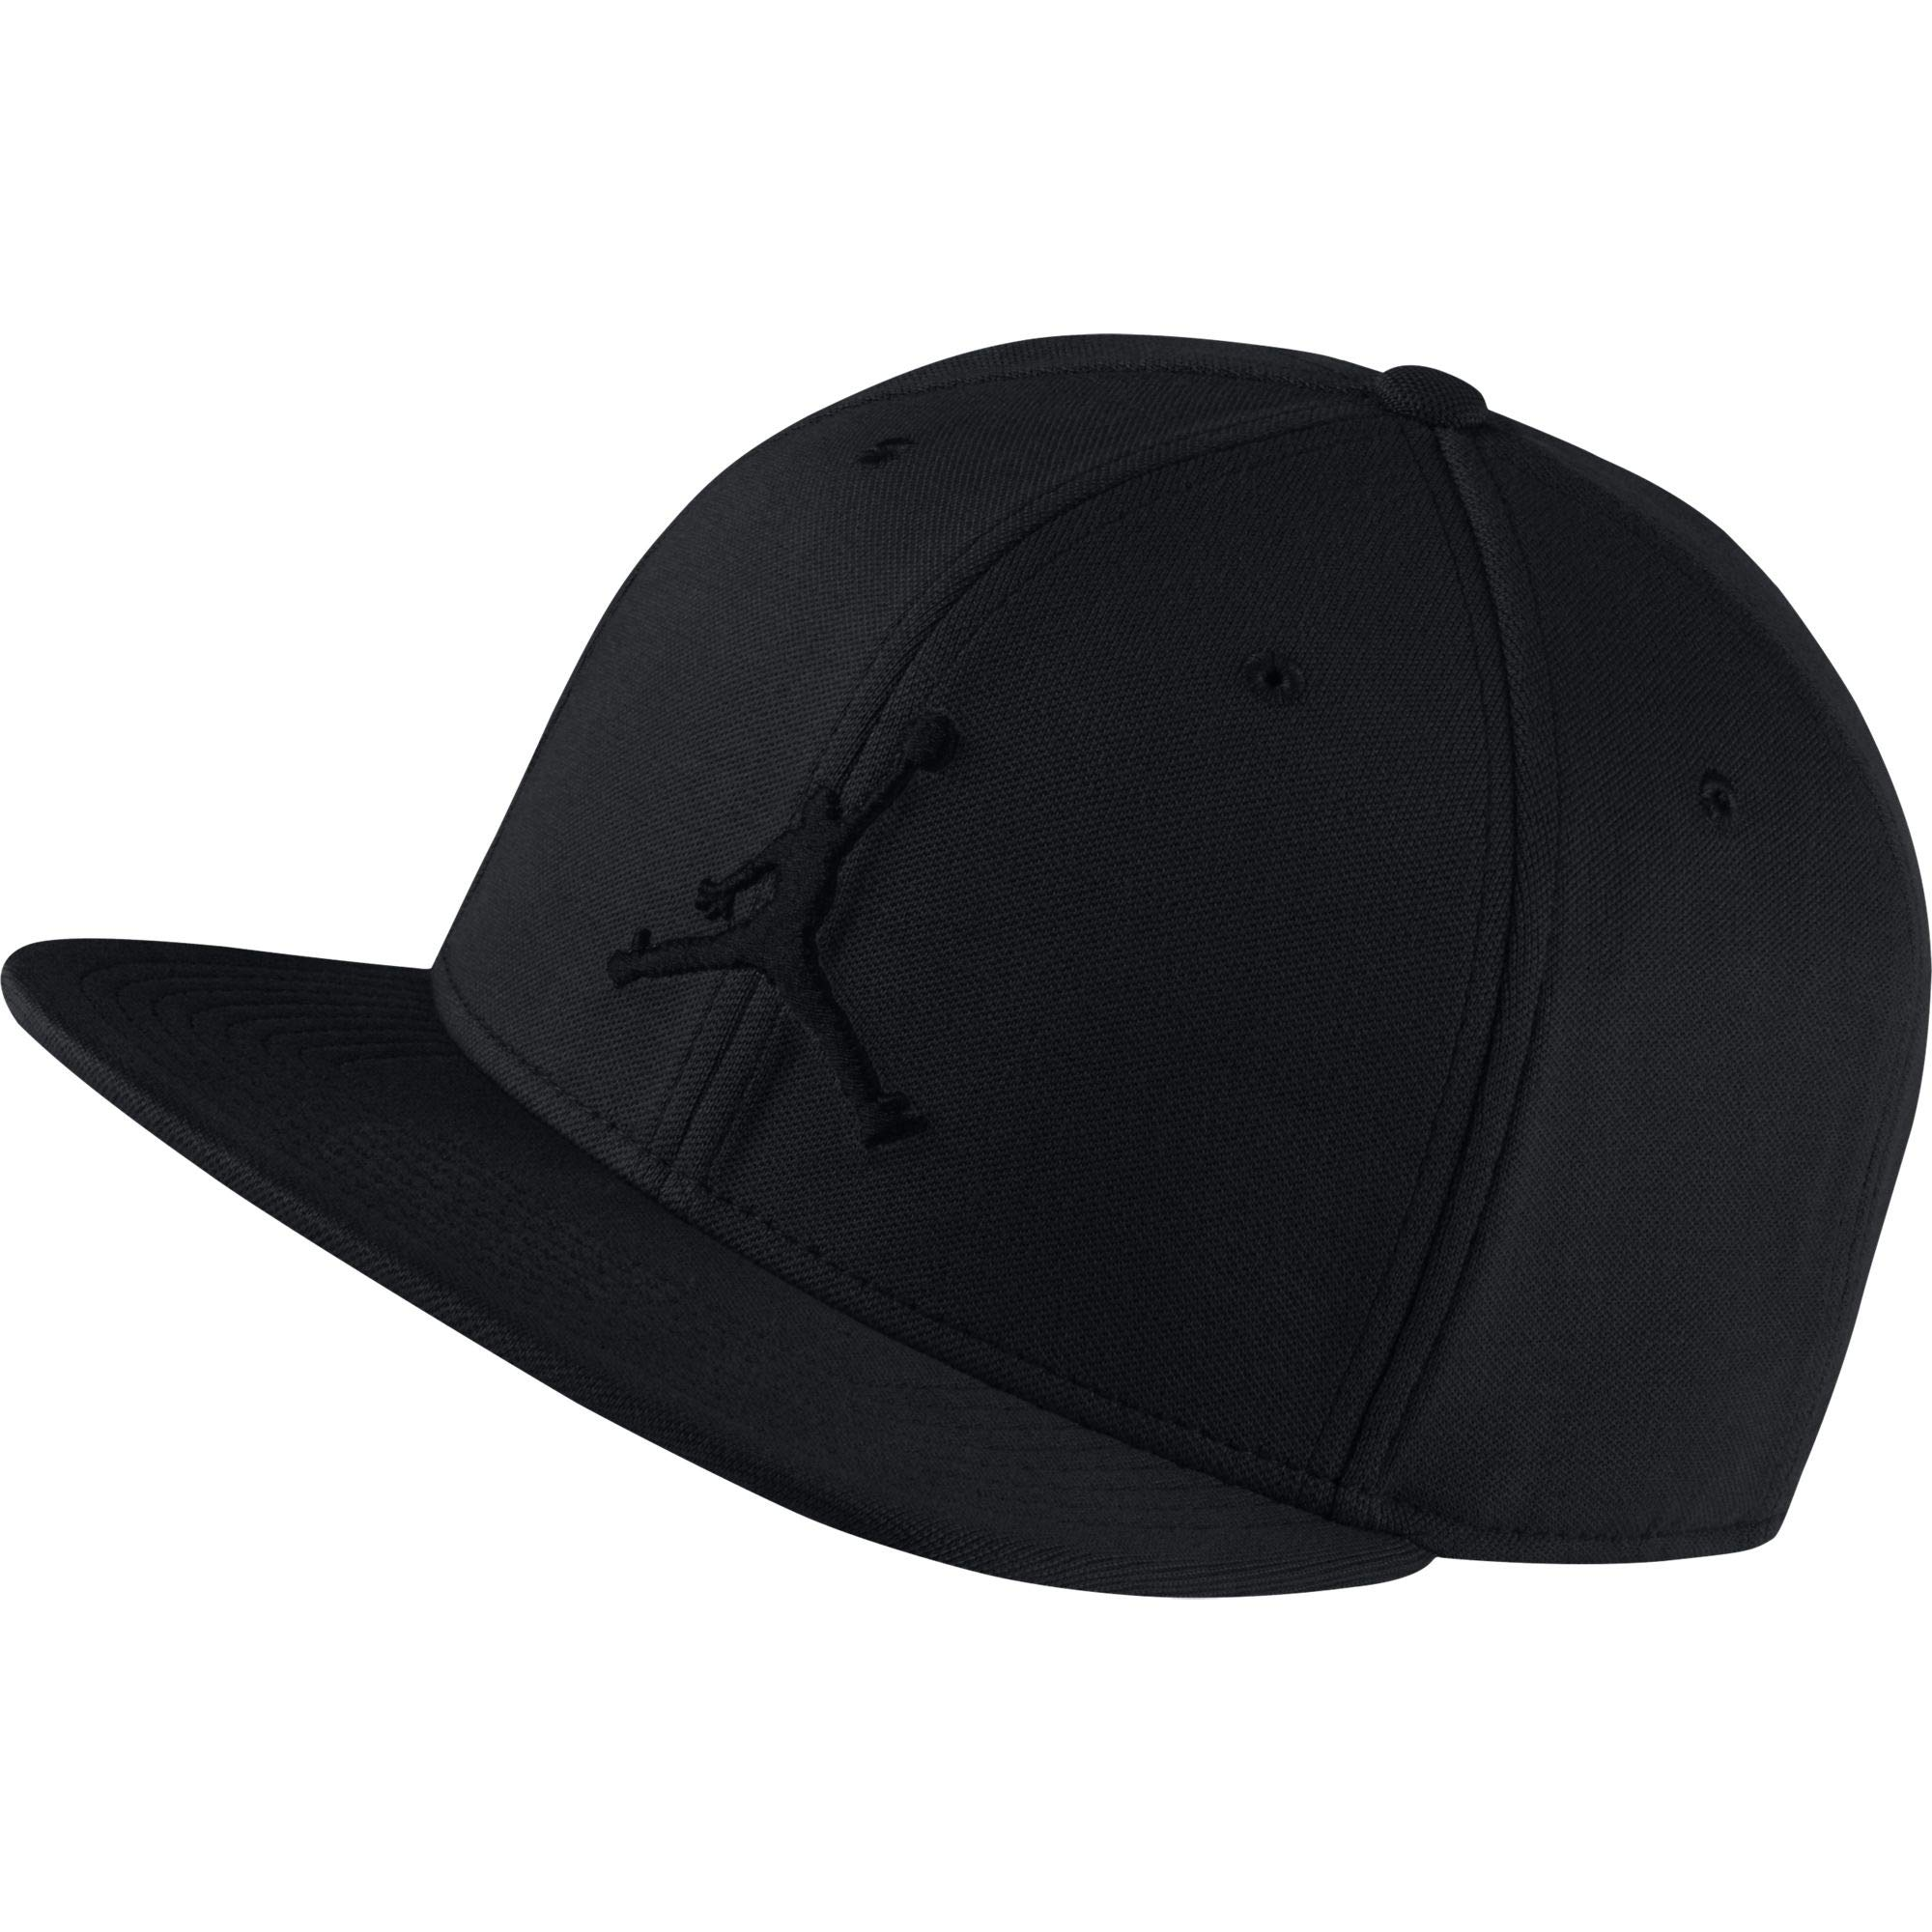 c6ceeaea372 Galleon - Nike Mens Jordan Jumpman Snapback Hat Black Black 861452-010